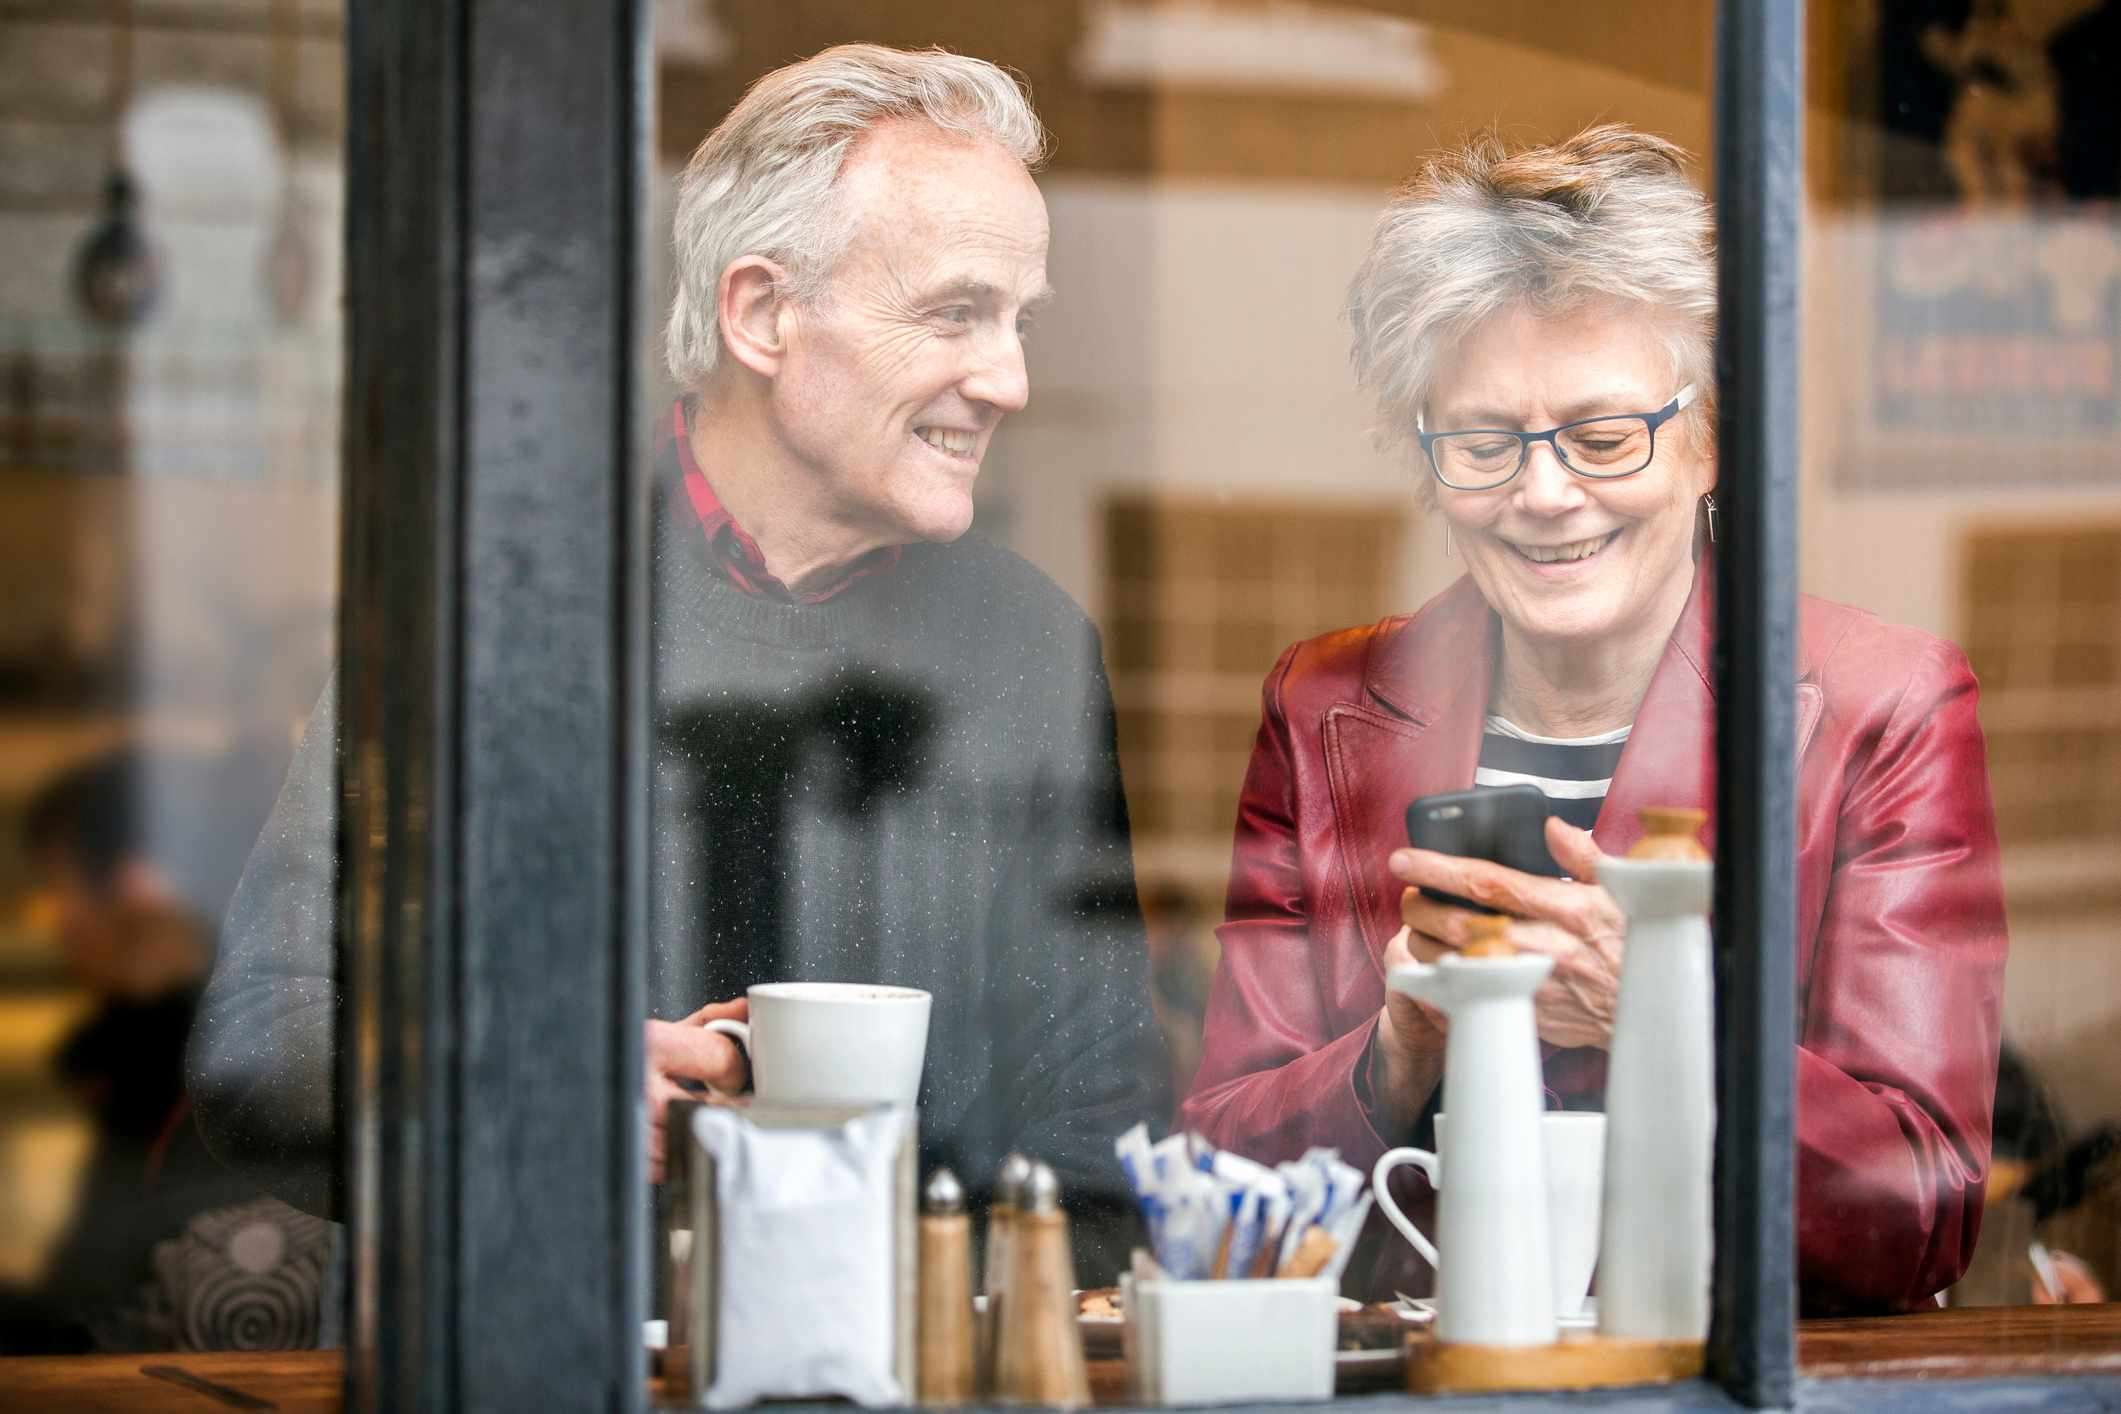 Senior couple in cafe window seat drinking coffee and texting on smartphone